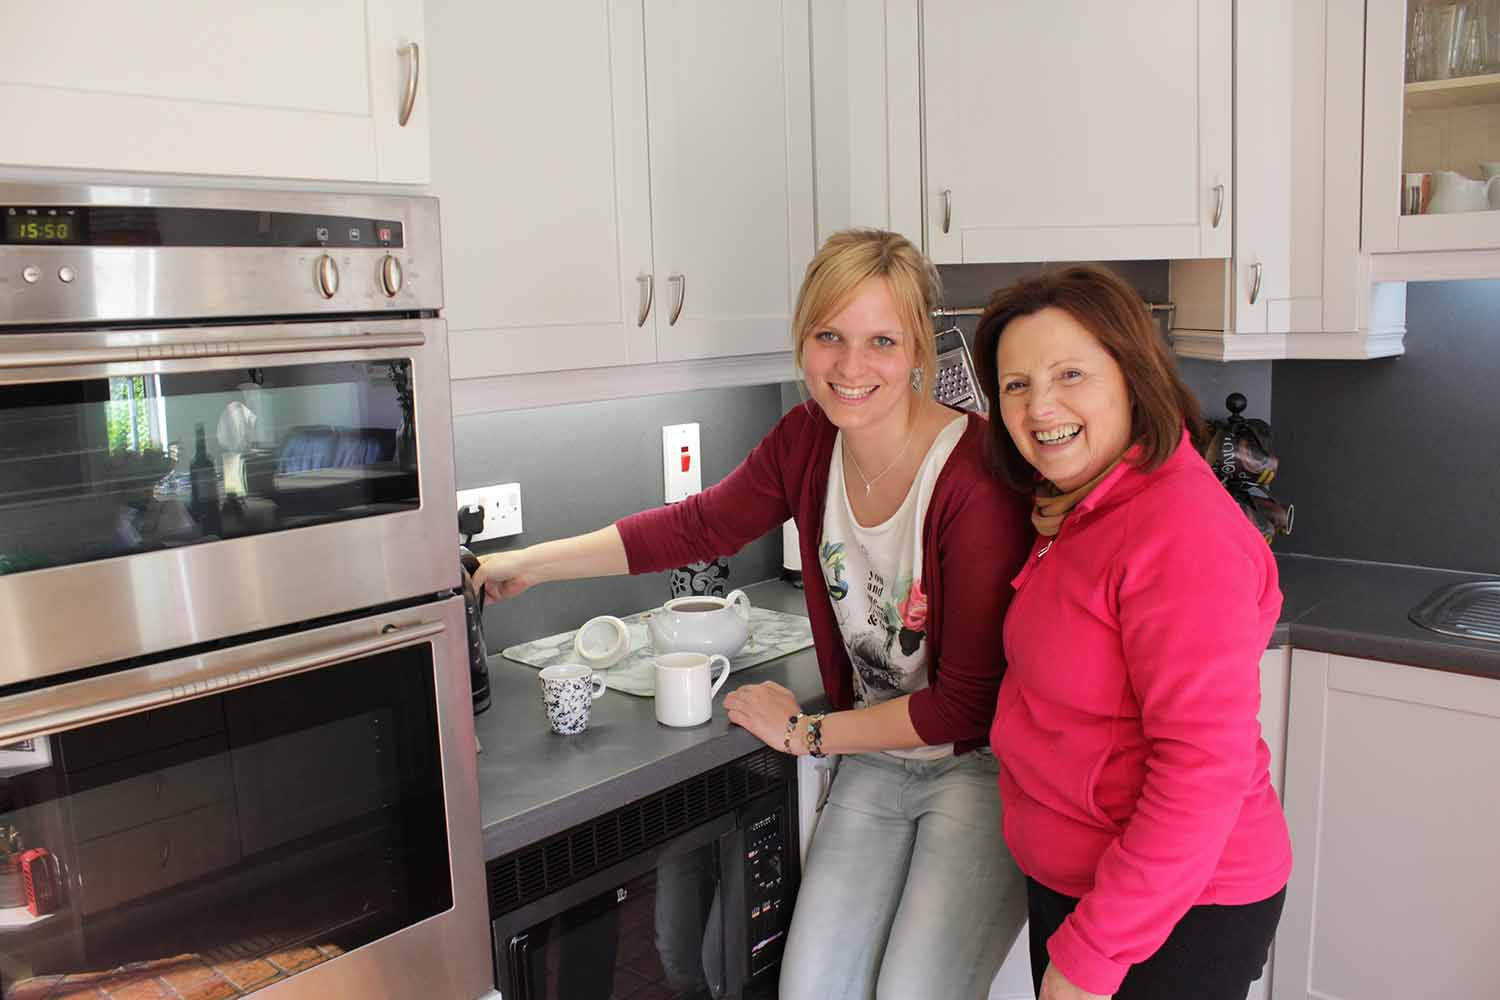 Dublin_Acc_Homestay_Kitchen_Student_08